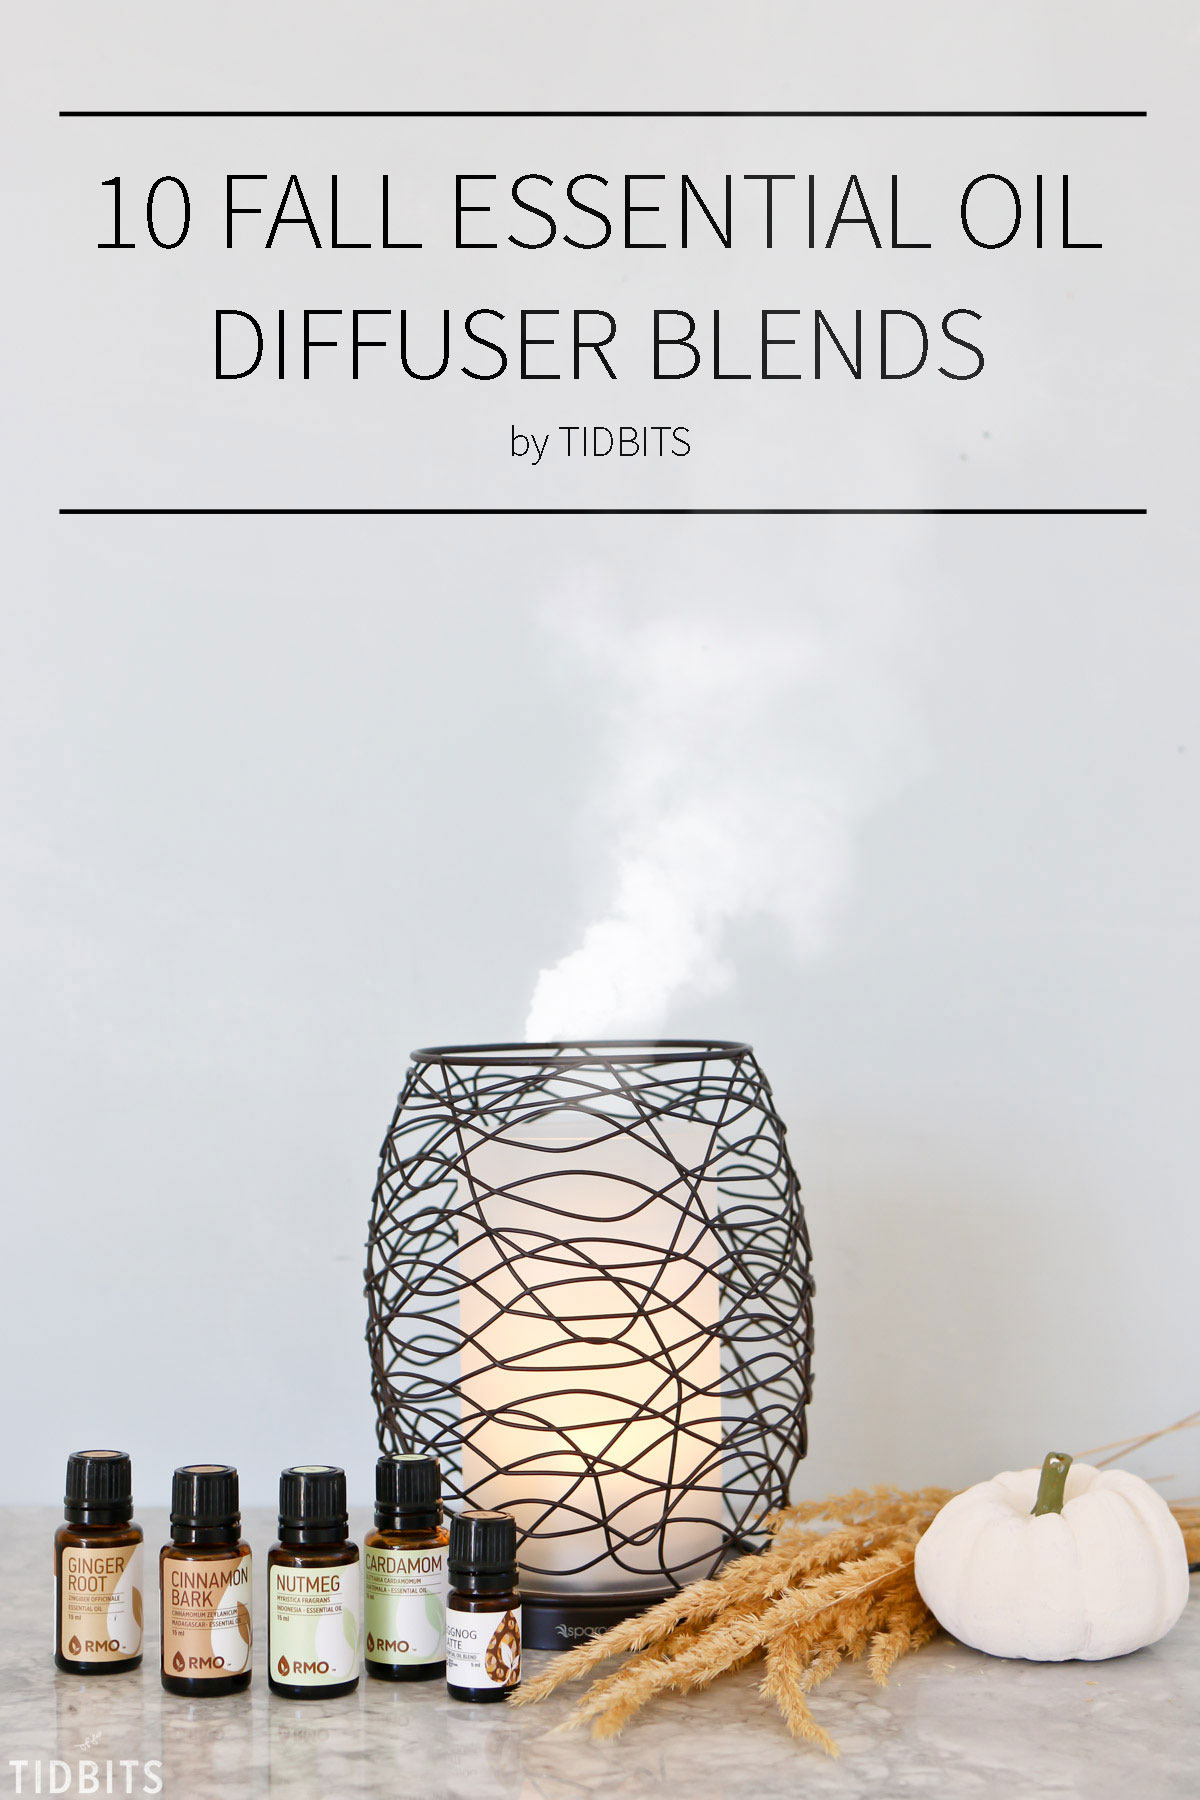 diffuser blends and diffuser